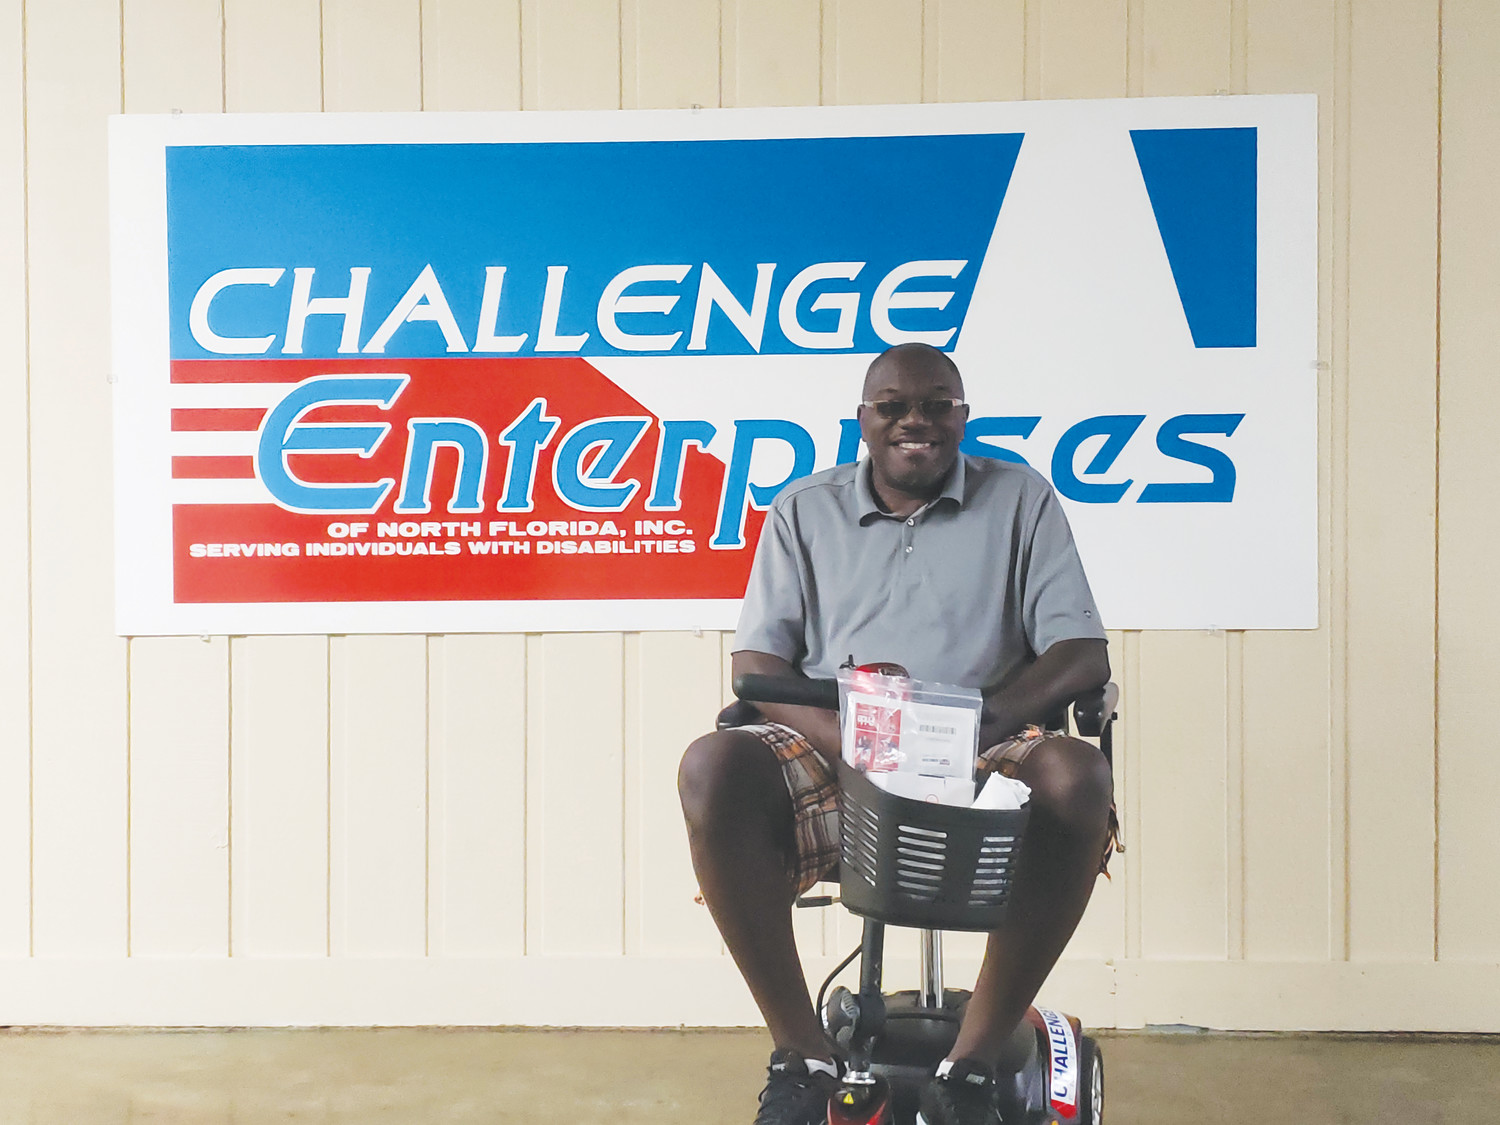 Duane Coats' life has been improved greatly by the new scooter shown here that was donated by Clay County nonprofit Challenge Enterprises.